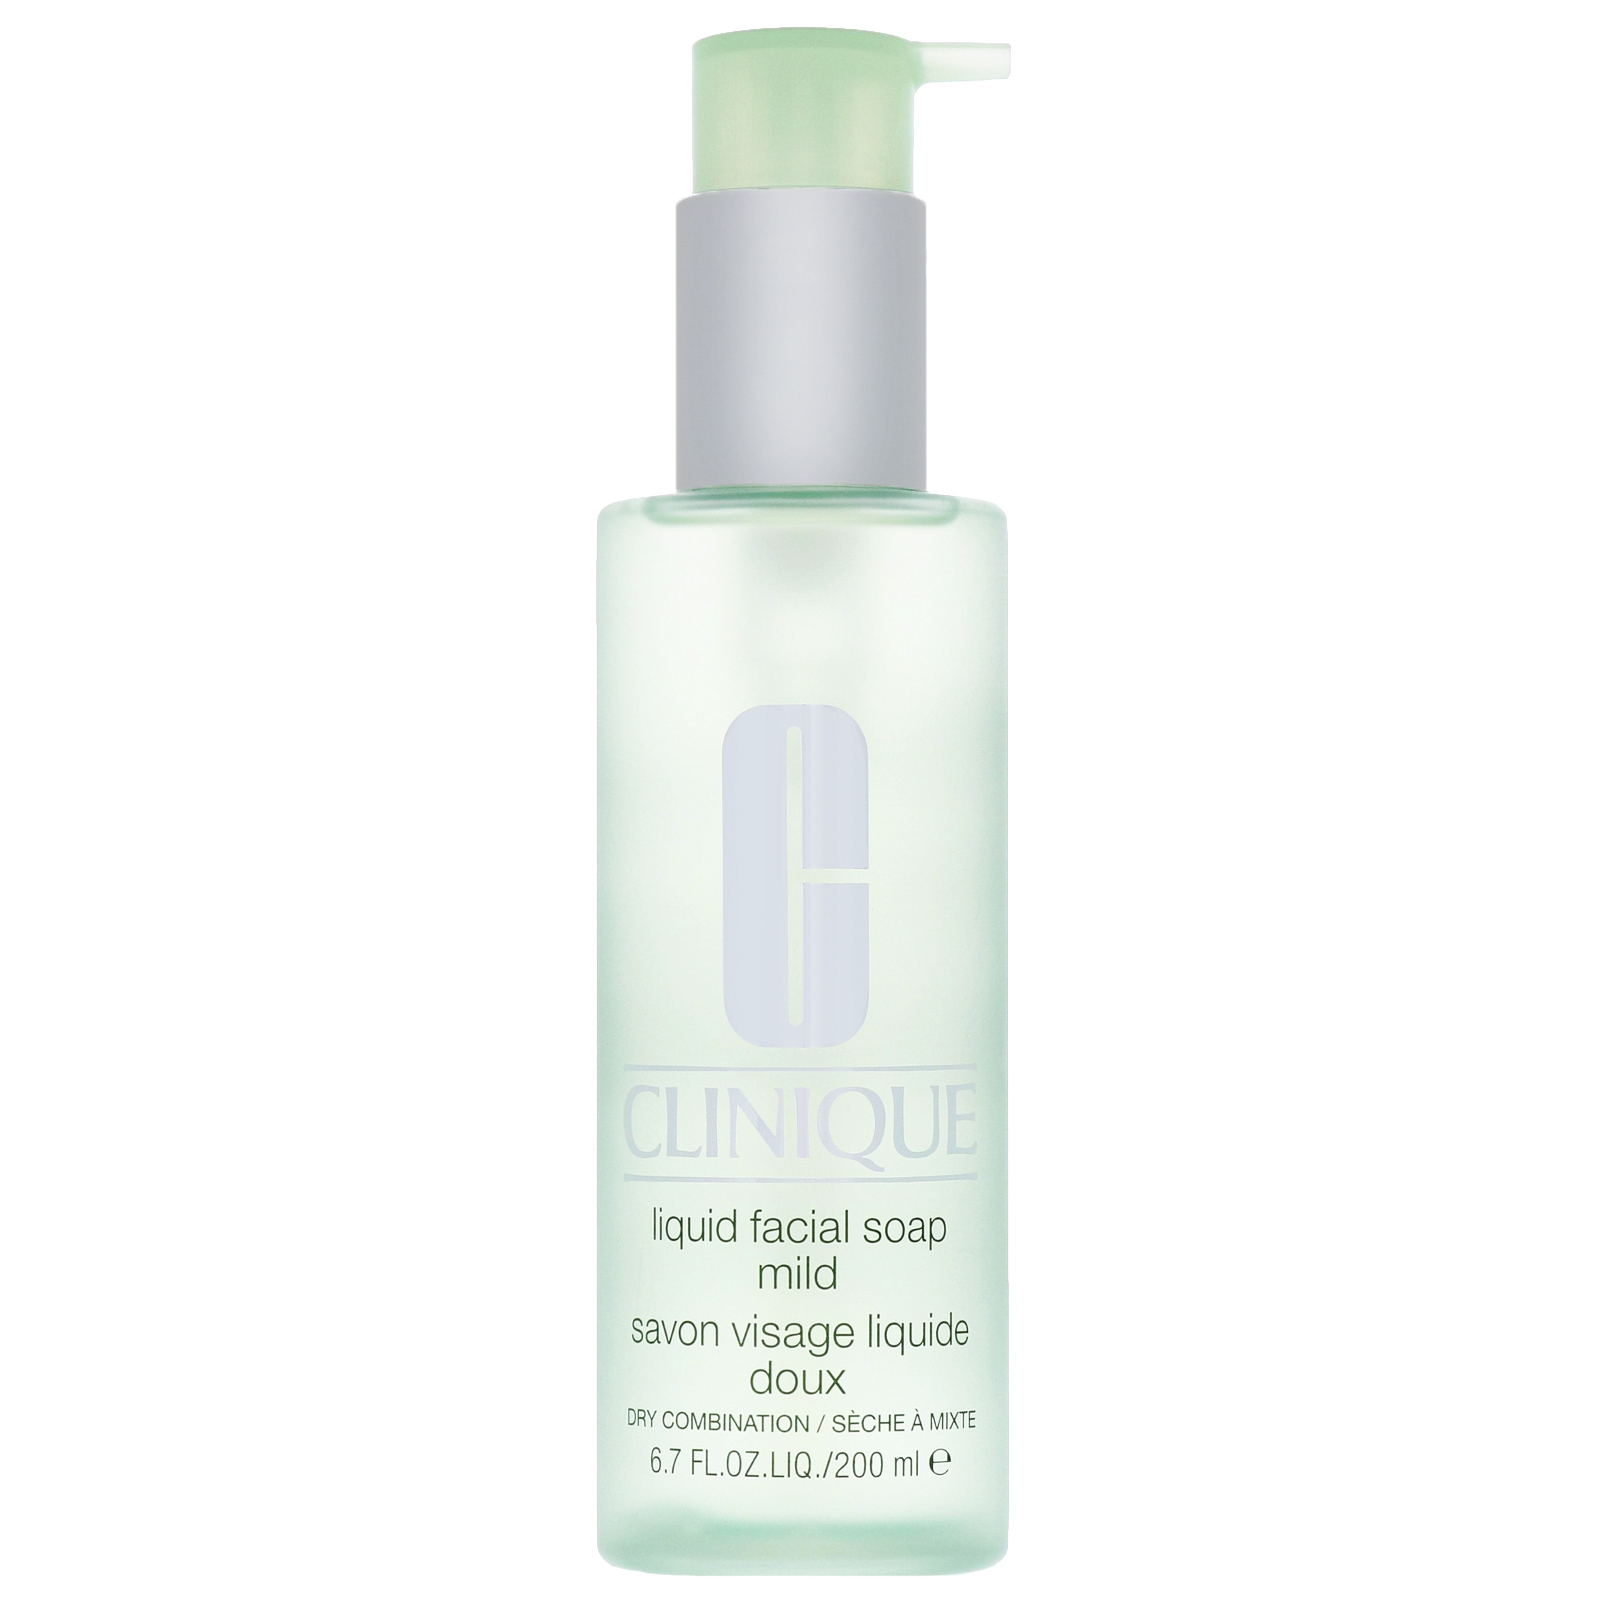 Clinique Cleansers & Makeup Removers Liquid Facial Soap Mild for Dry / Combination Skin 200ml / 6.7 fl.oz.